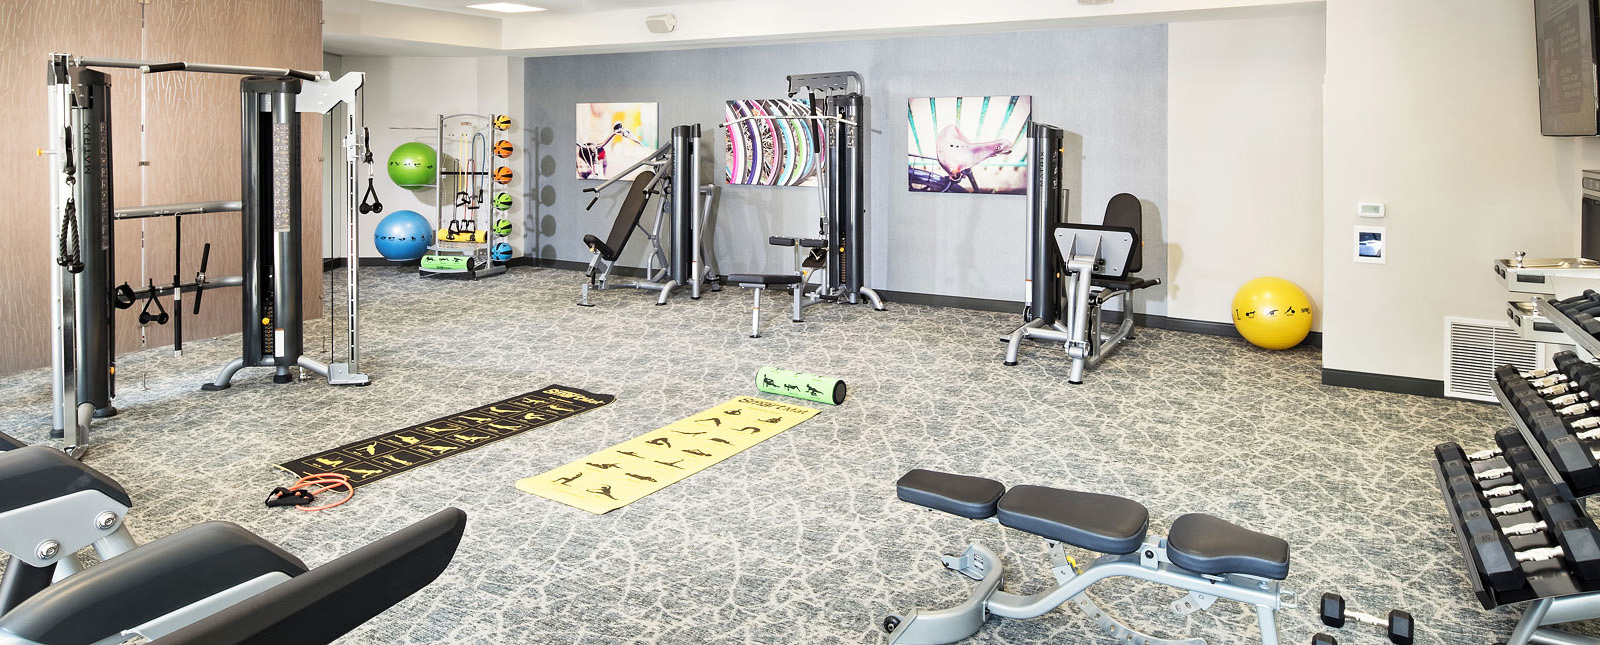 Takoma_Central_Amenities_Fitness_Center1